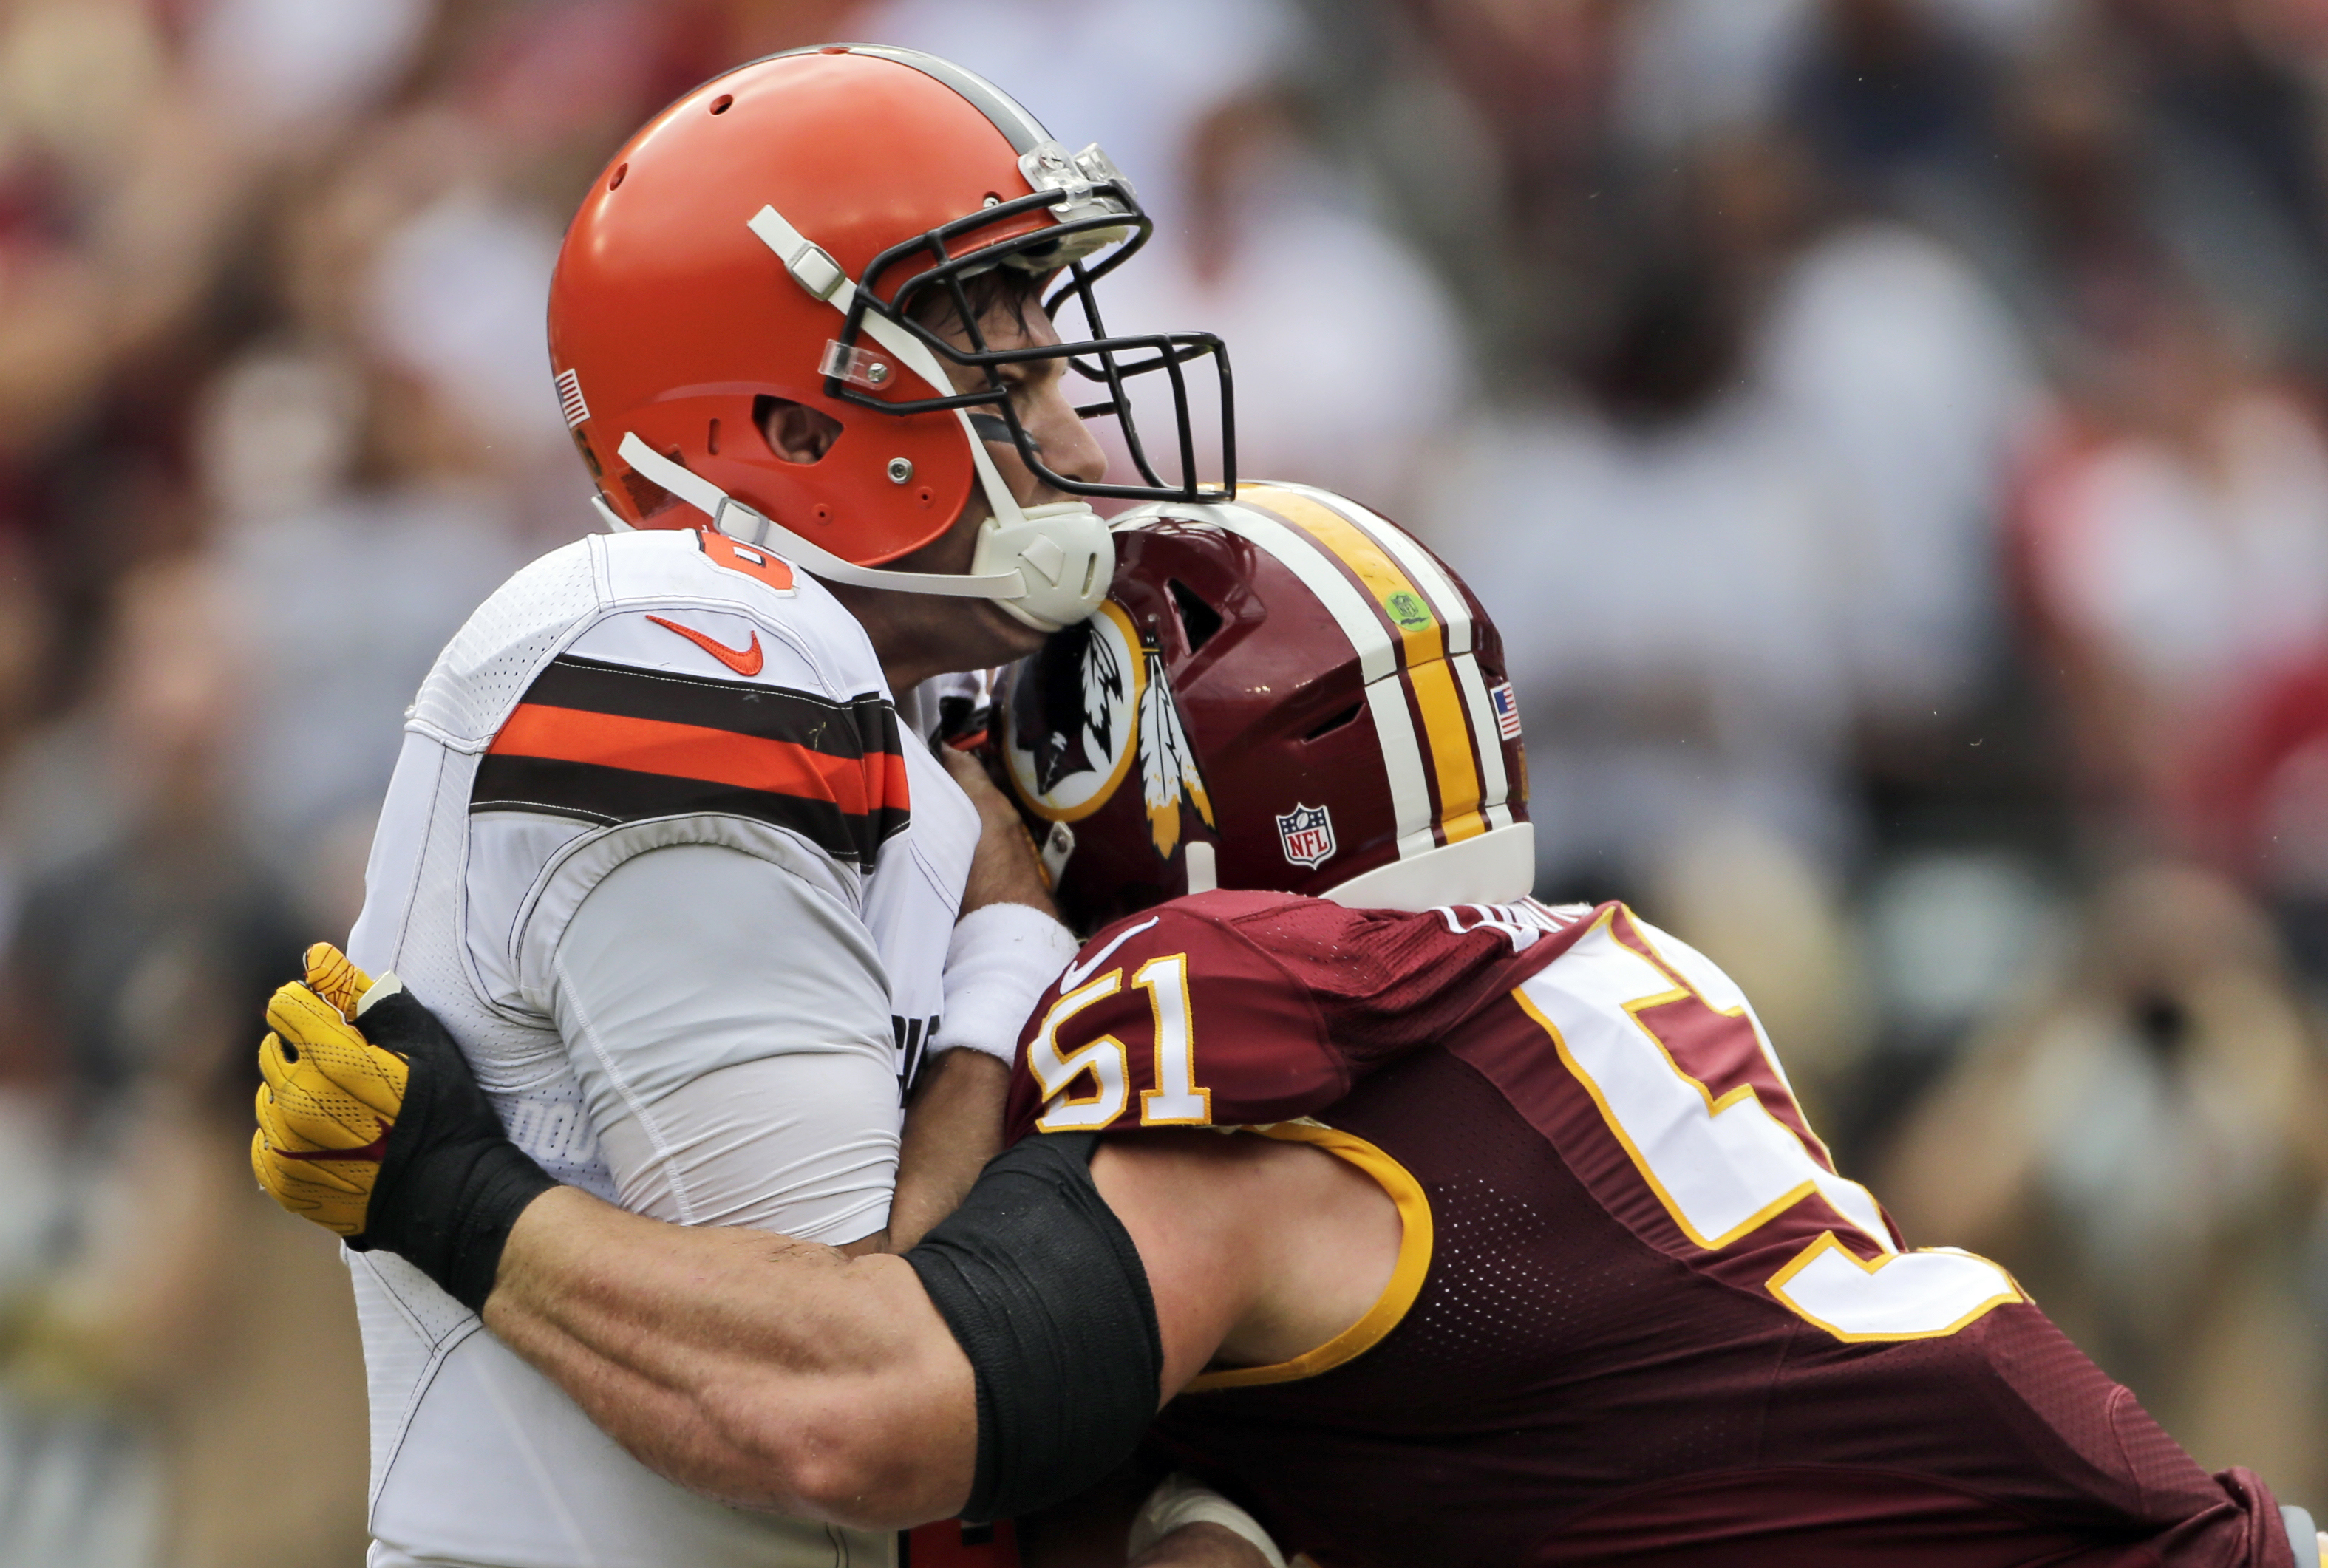 Cleveland Browns quarterback Cody Kessler (6) is hit by Washington Redskins inside linebacker Will Compton (51) after he threw a touchdown pass during the first half of an NFL football game Sunday, Oct. 2, 2016, in Landover, Md. (AP Photo/Mark Tenally)